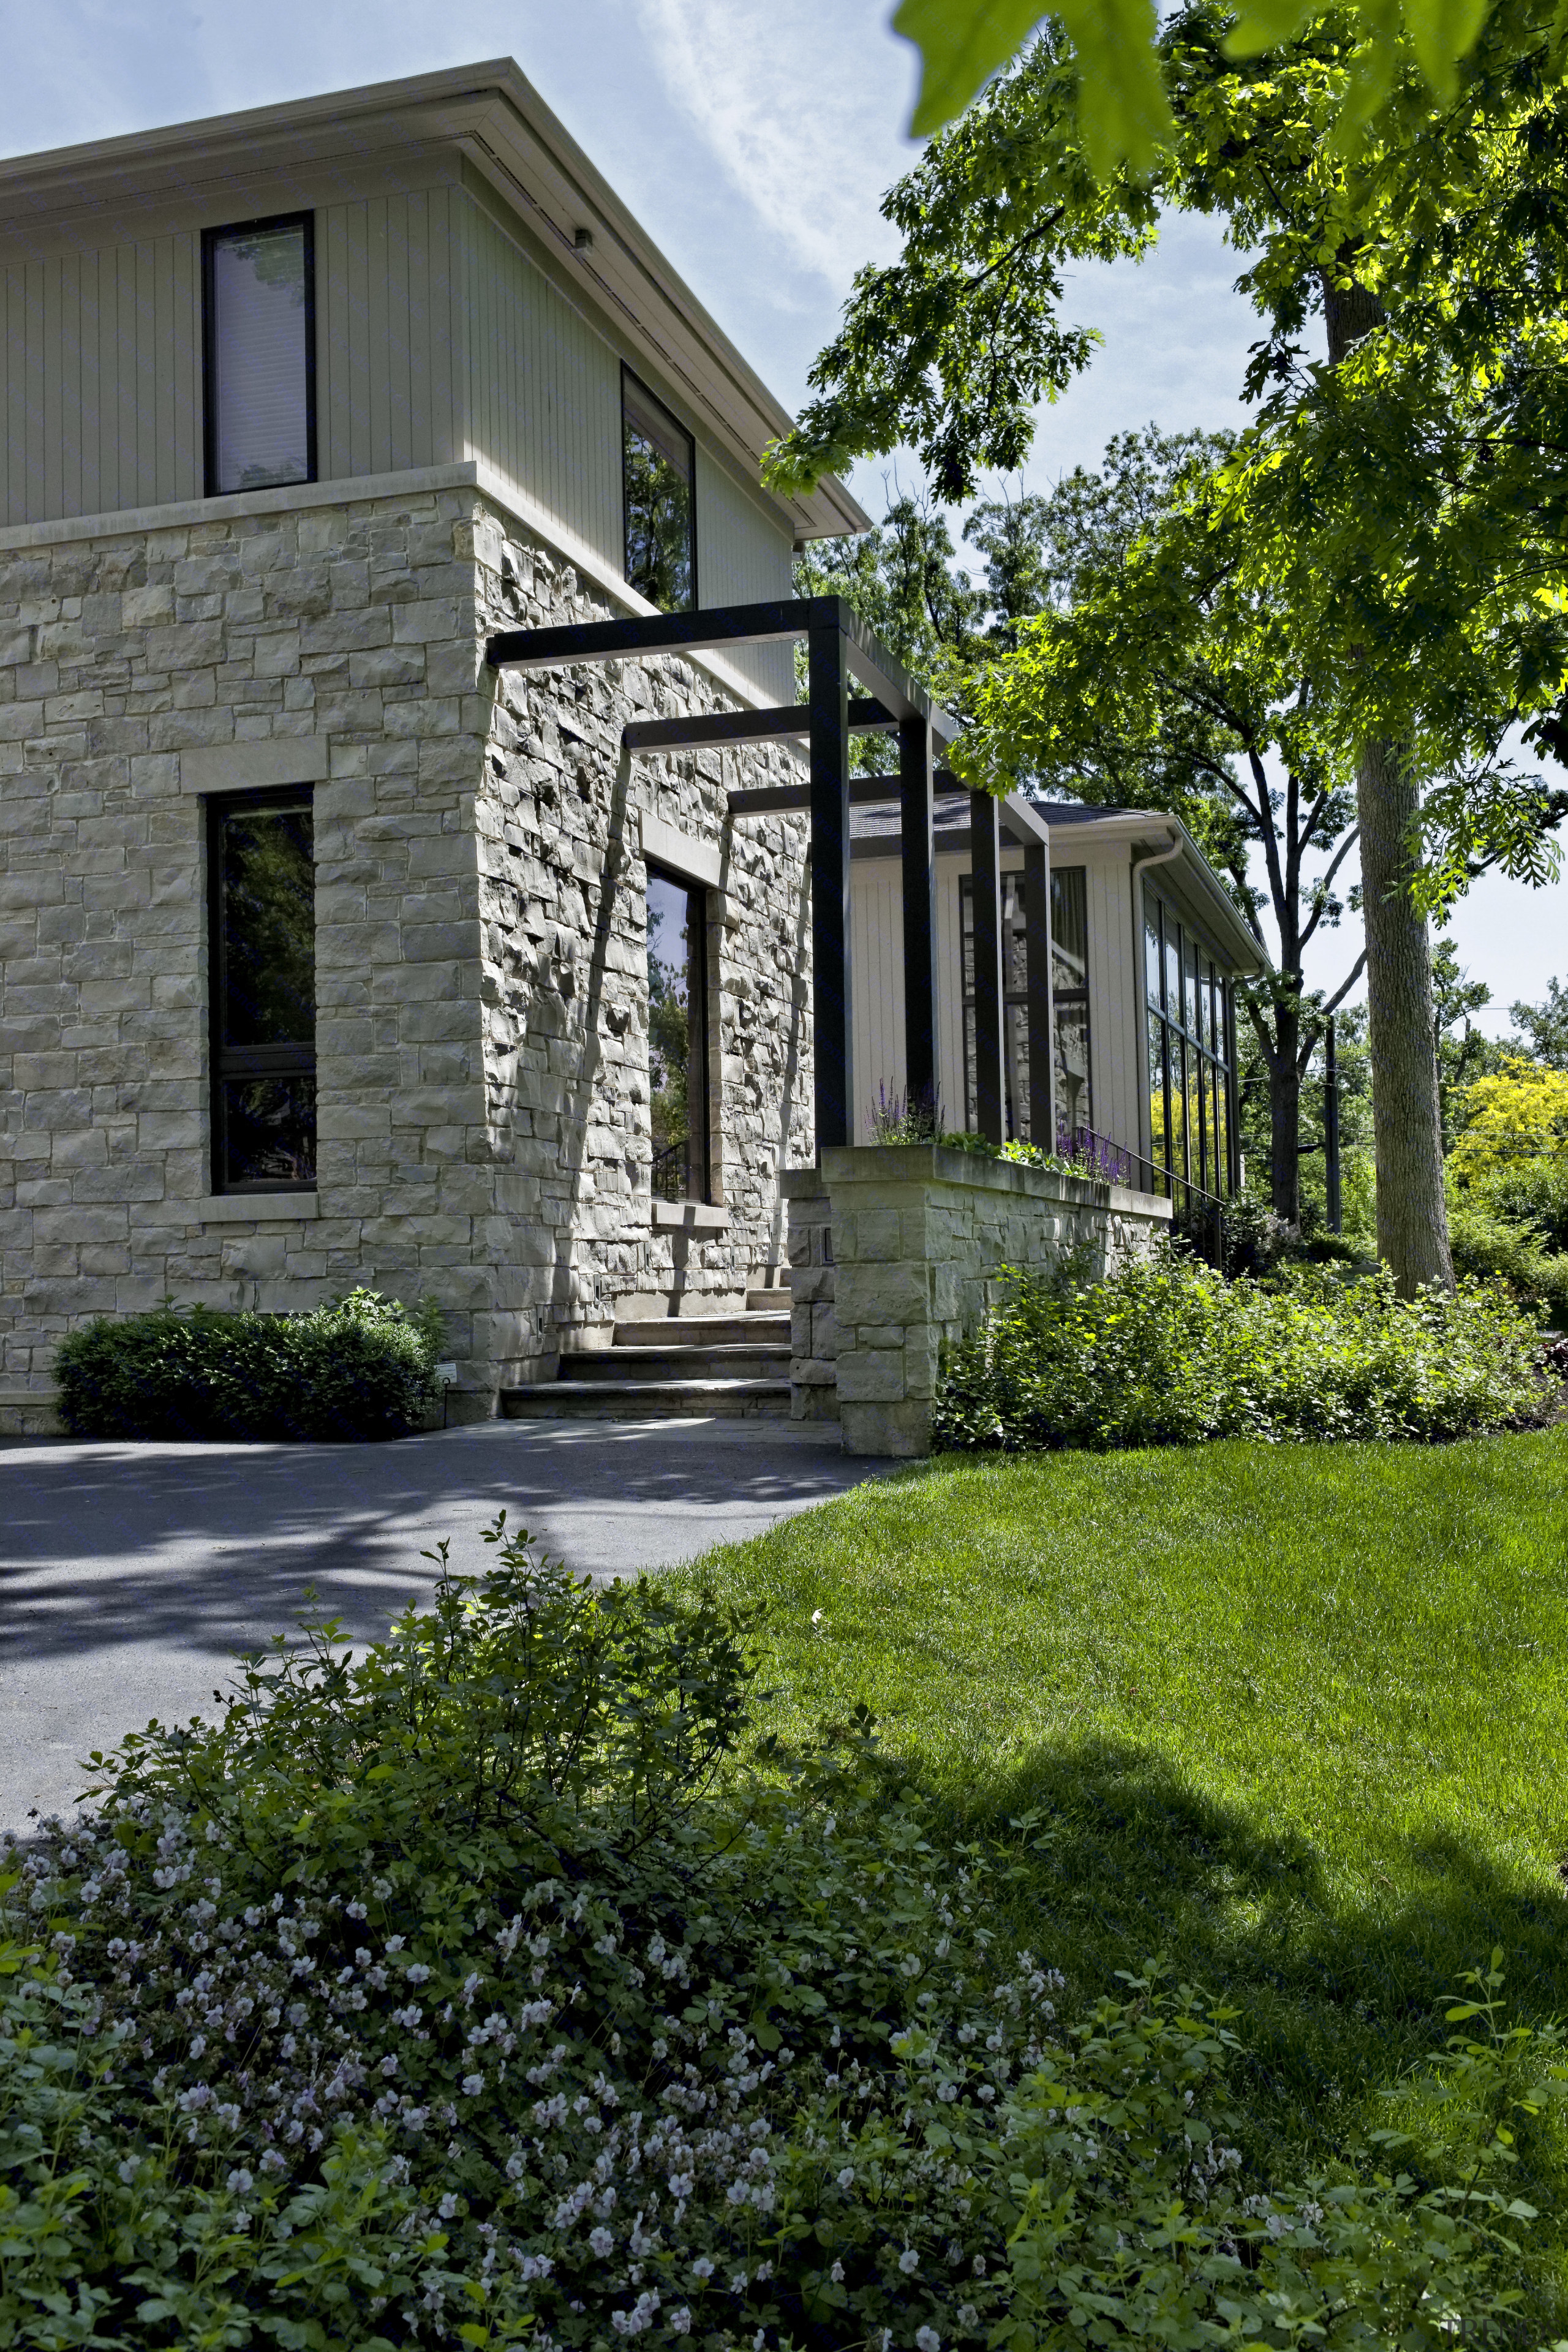 stone outside with paving and lawn architecture, building, cottage, estate, facade, farmhouse, home, house, landscaping, neighbourhood, outdoor structure, property, real estate, residential area, siding, walkway, window, yard, green